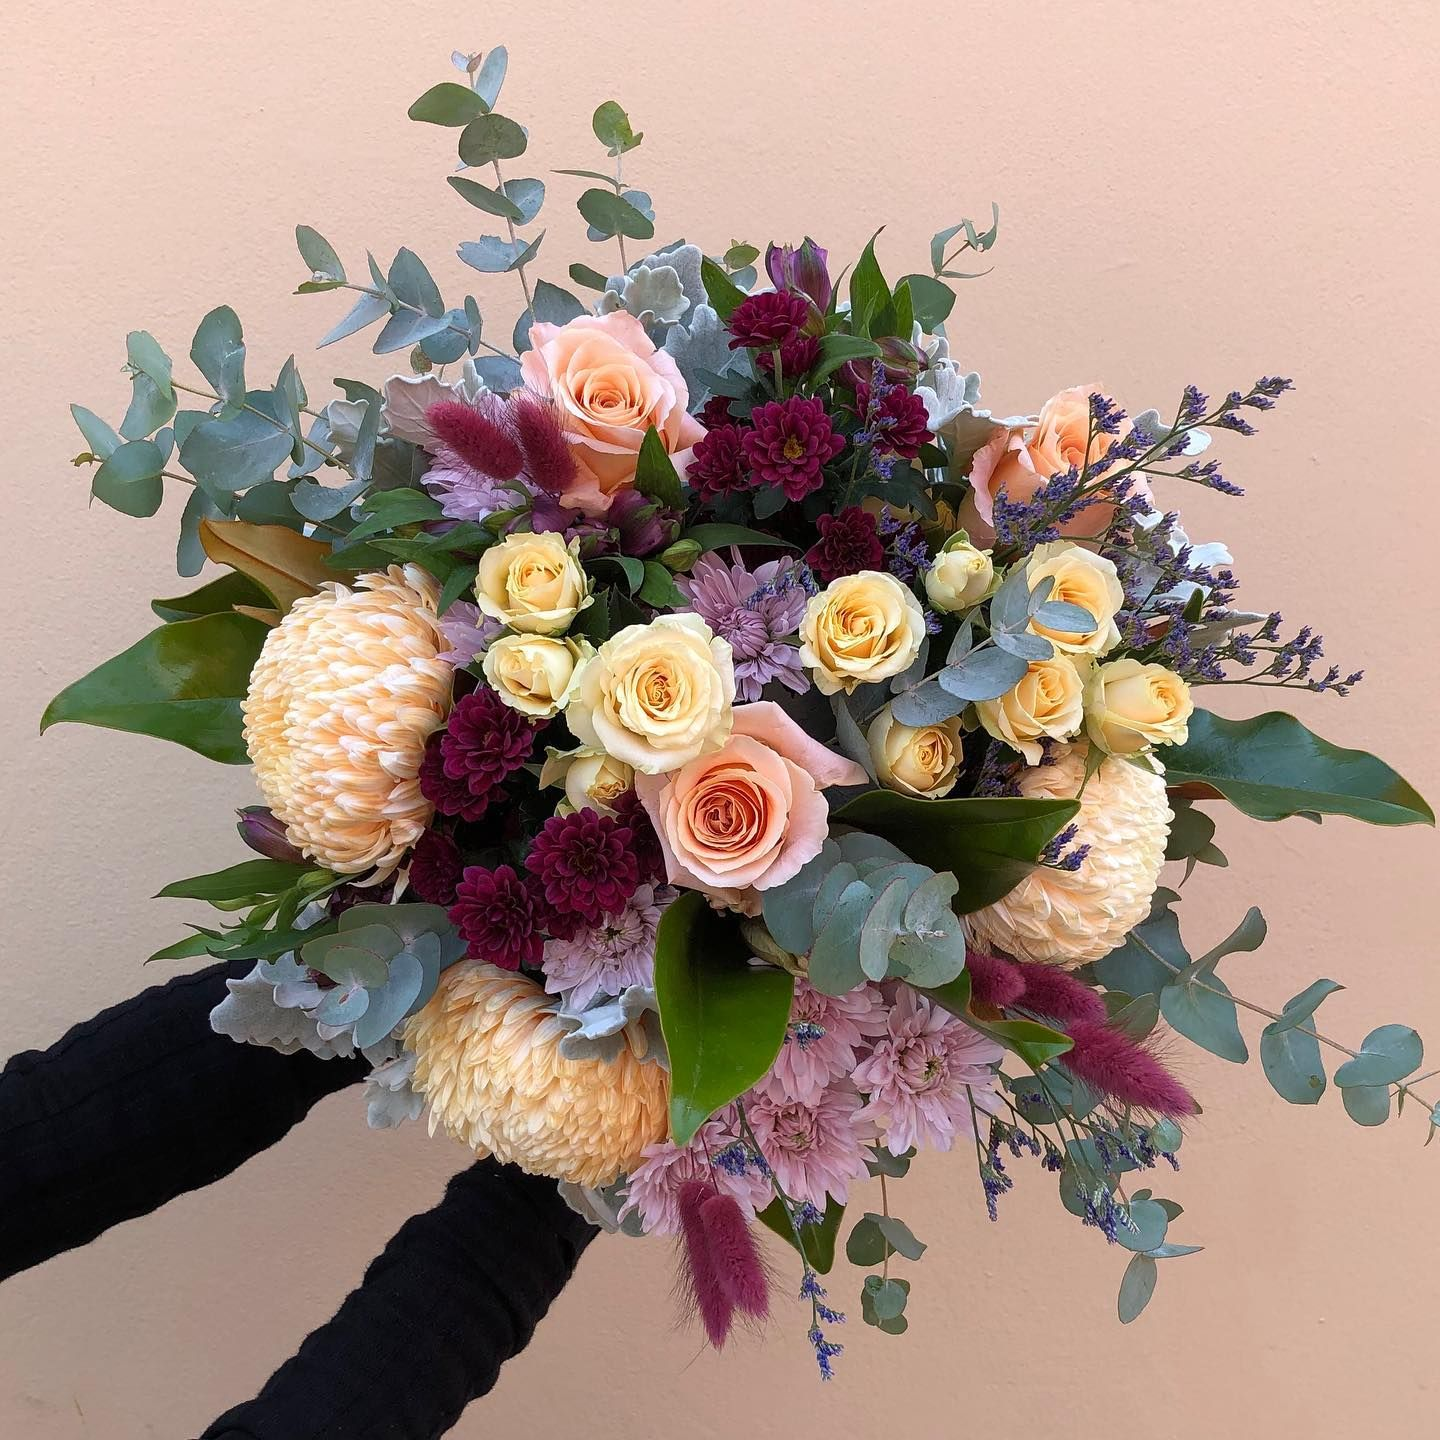 Florist Near Me Little Love Co Florist In 2020 Order Flowers Same Day Flower Delivery Blooms Florist